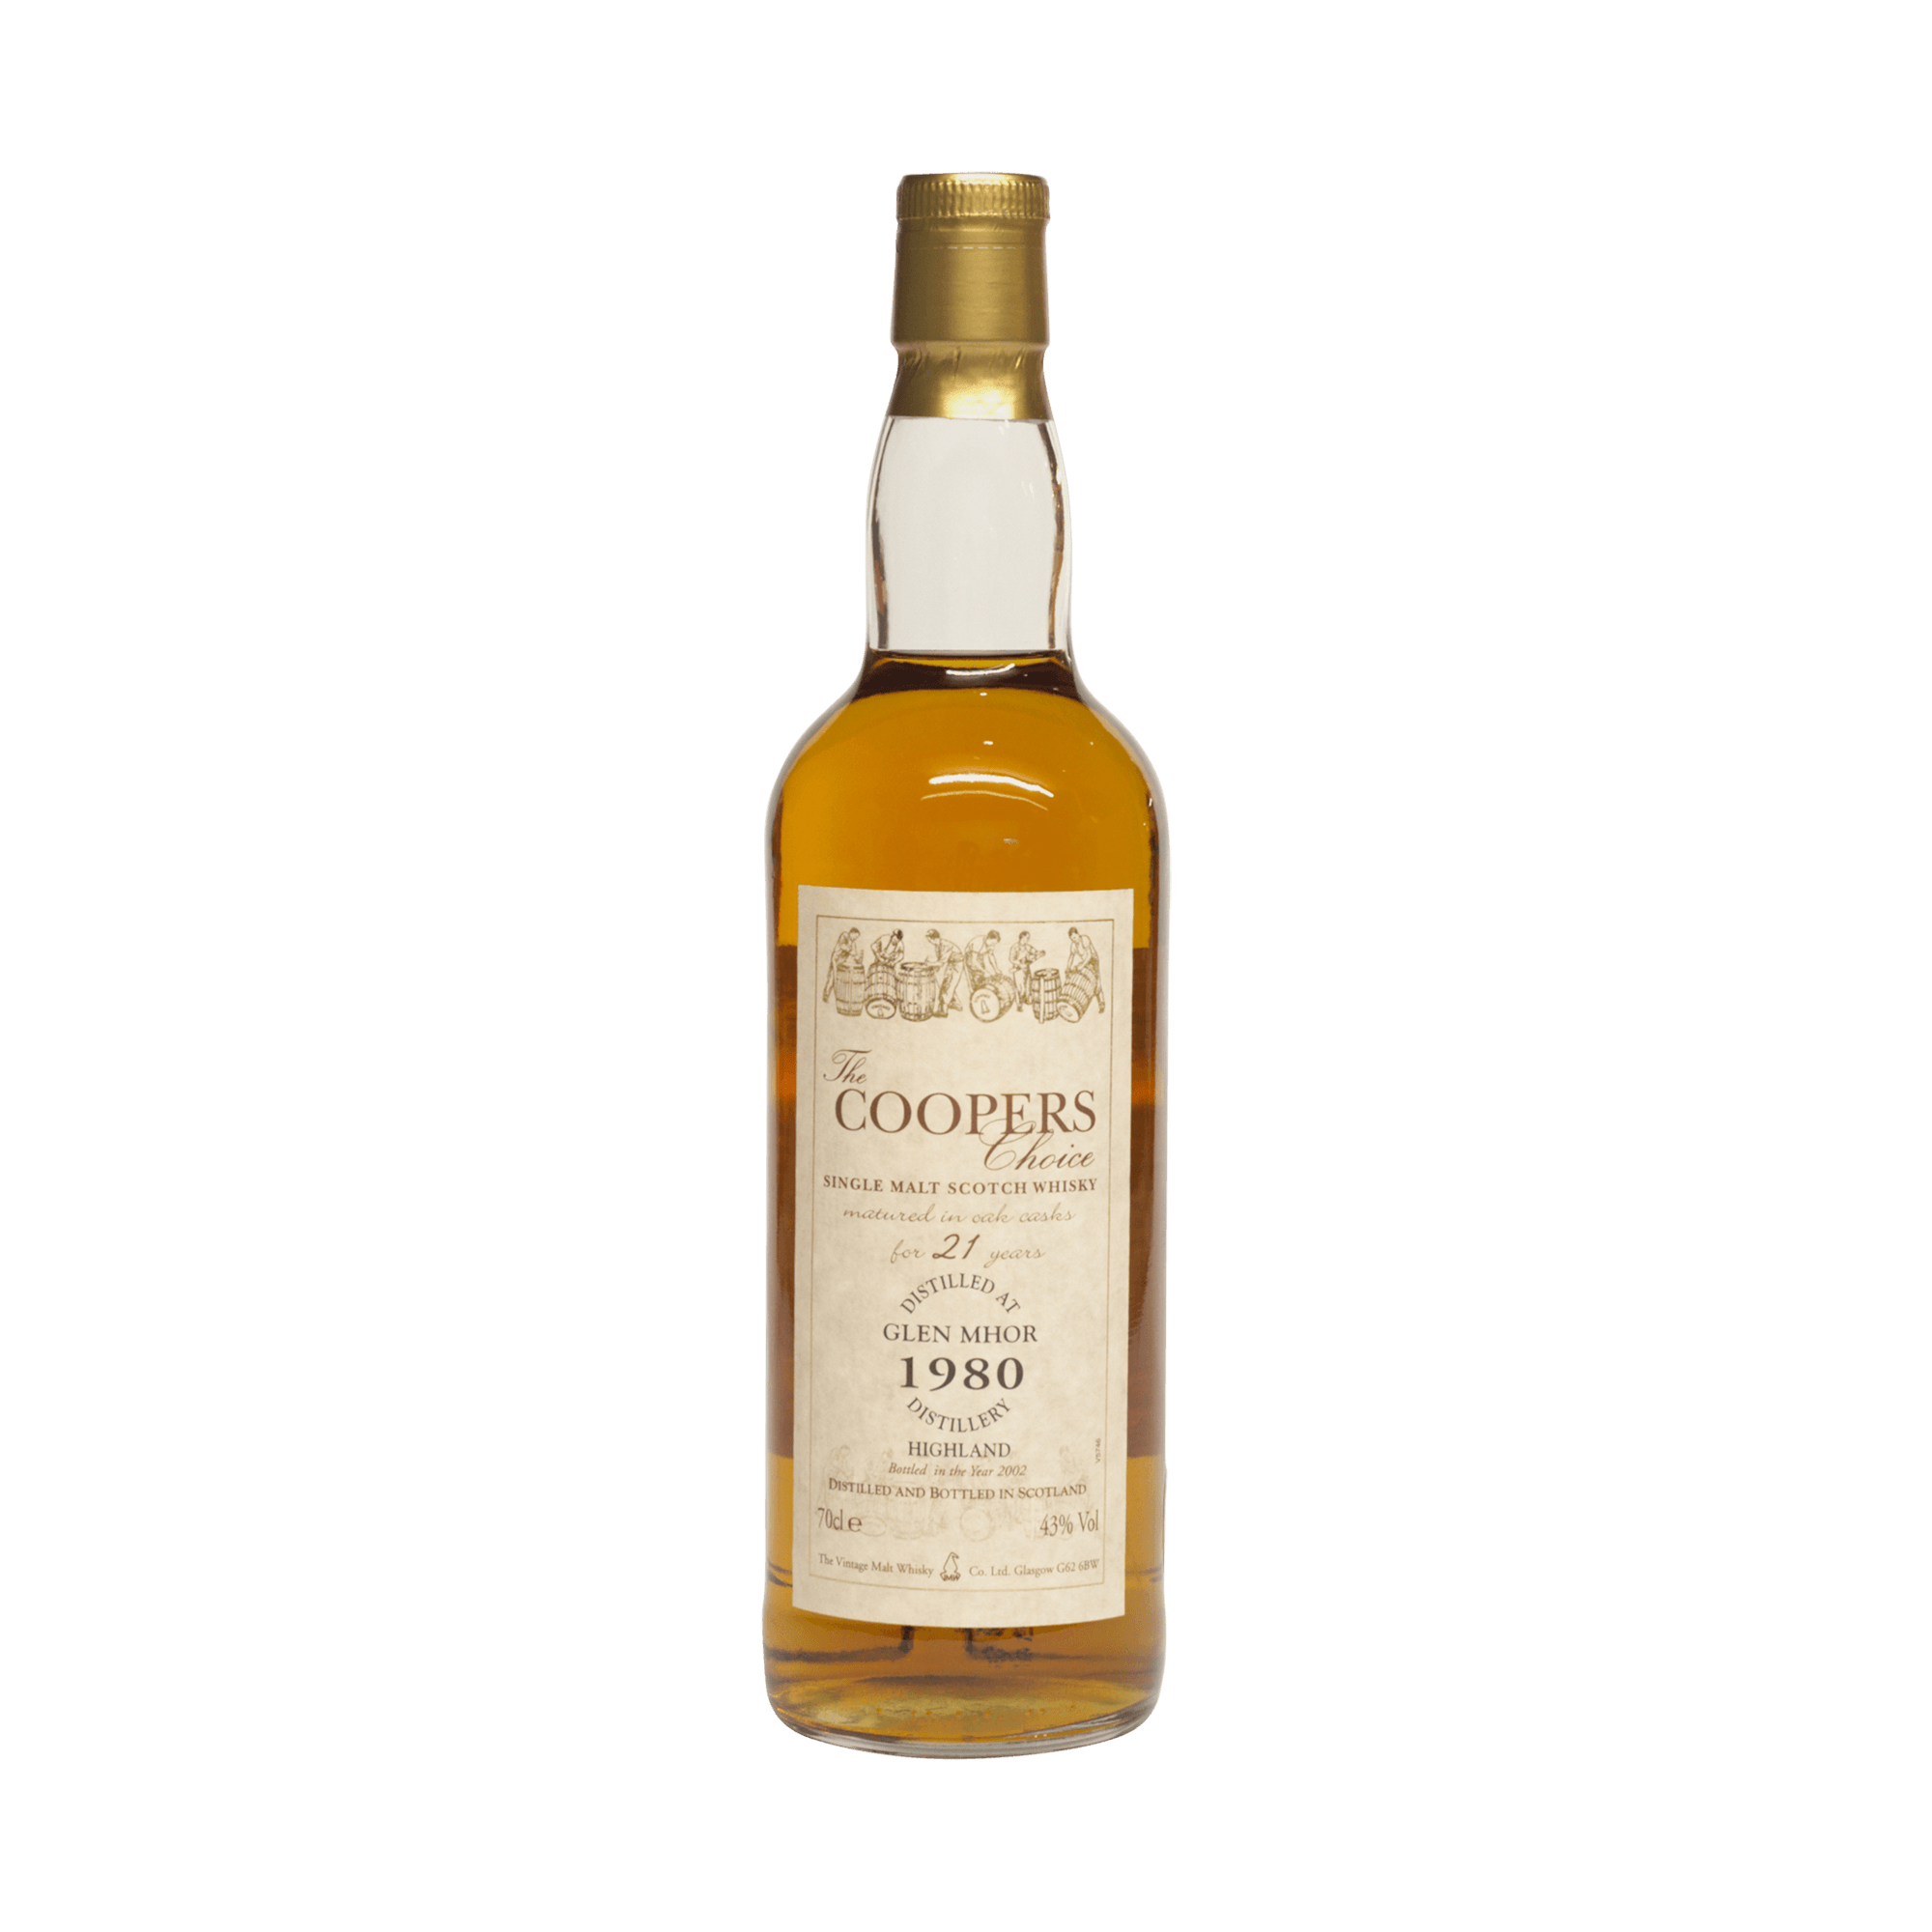 Glen Mhor 1980 21 Year Old 'The Coopers Choice' The Vintage Malt Whisky Company 43.00%